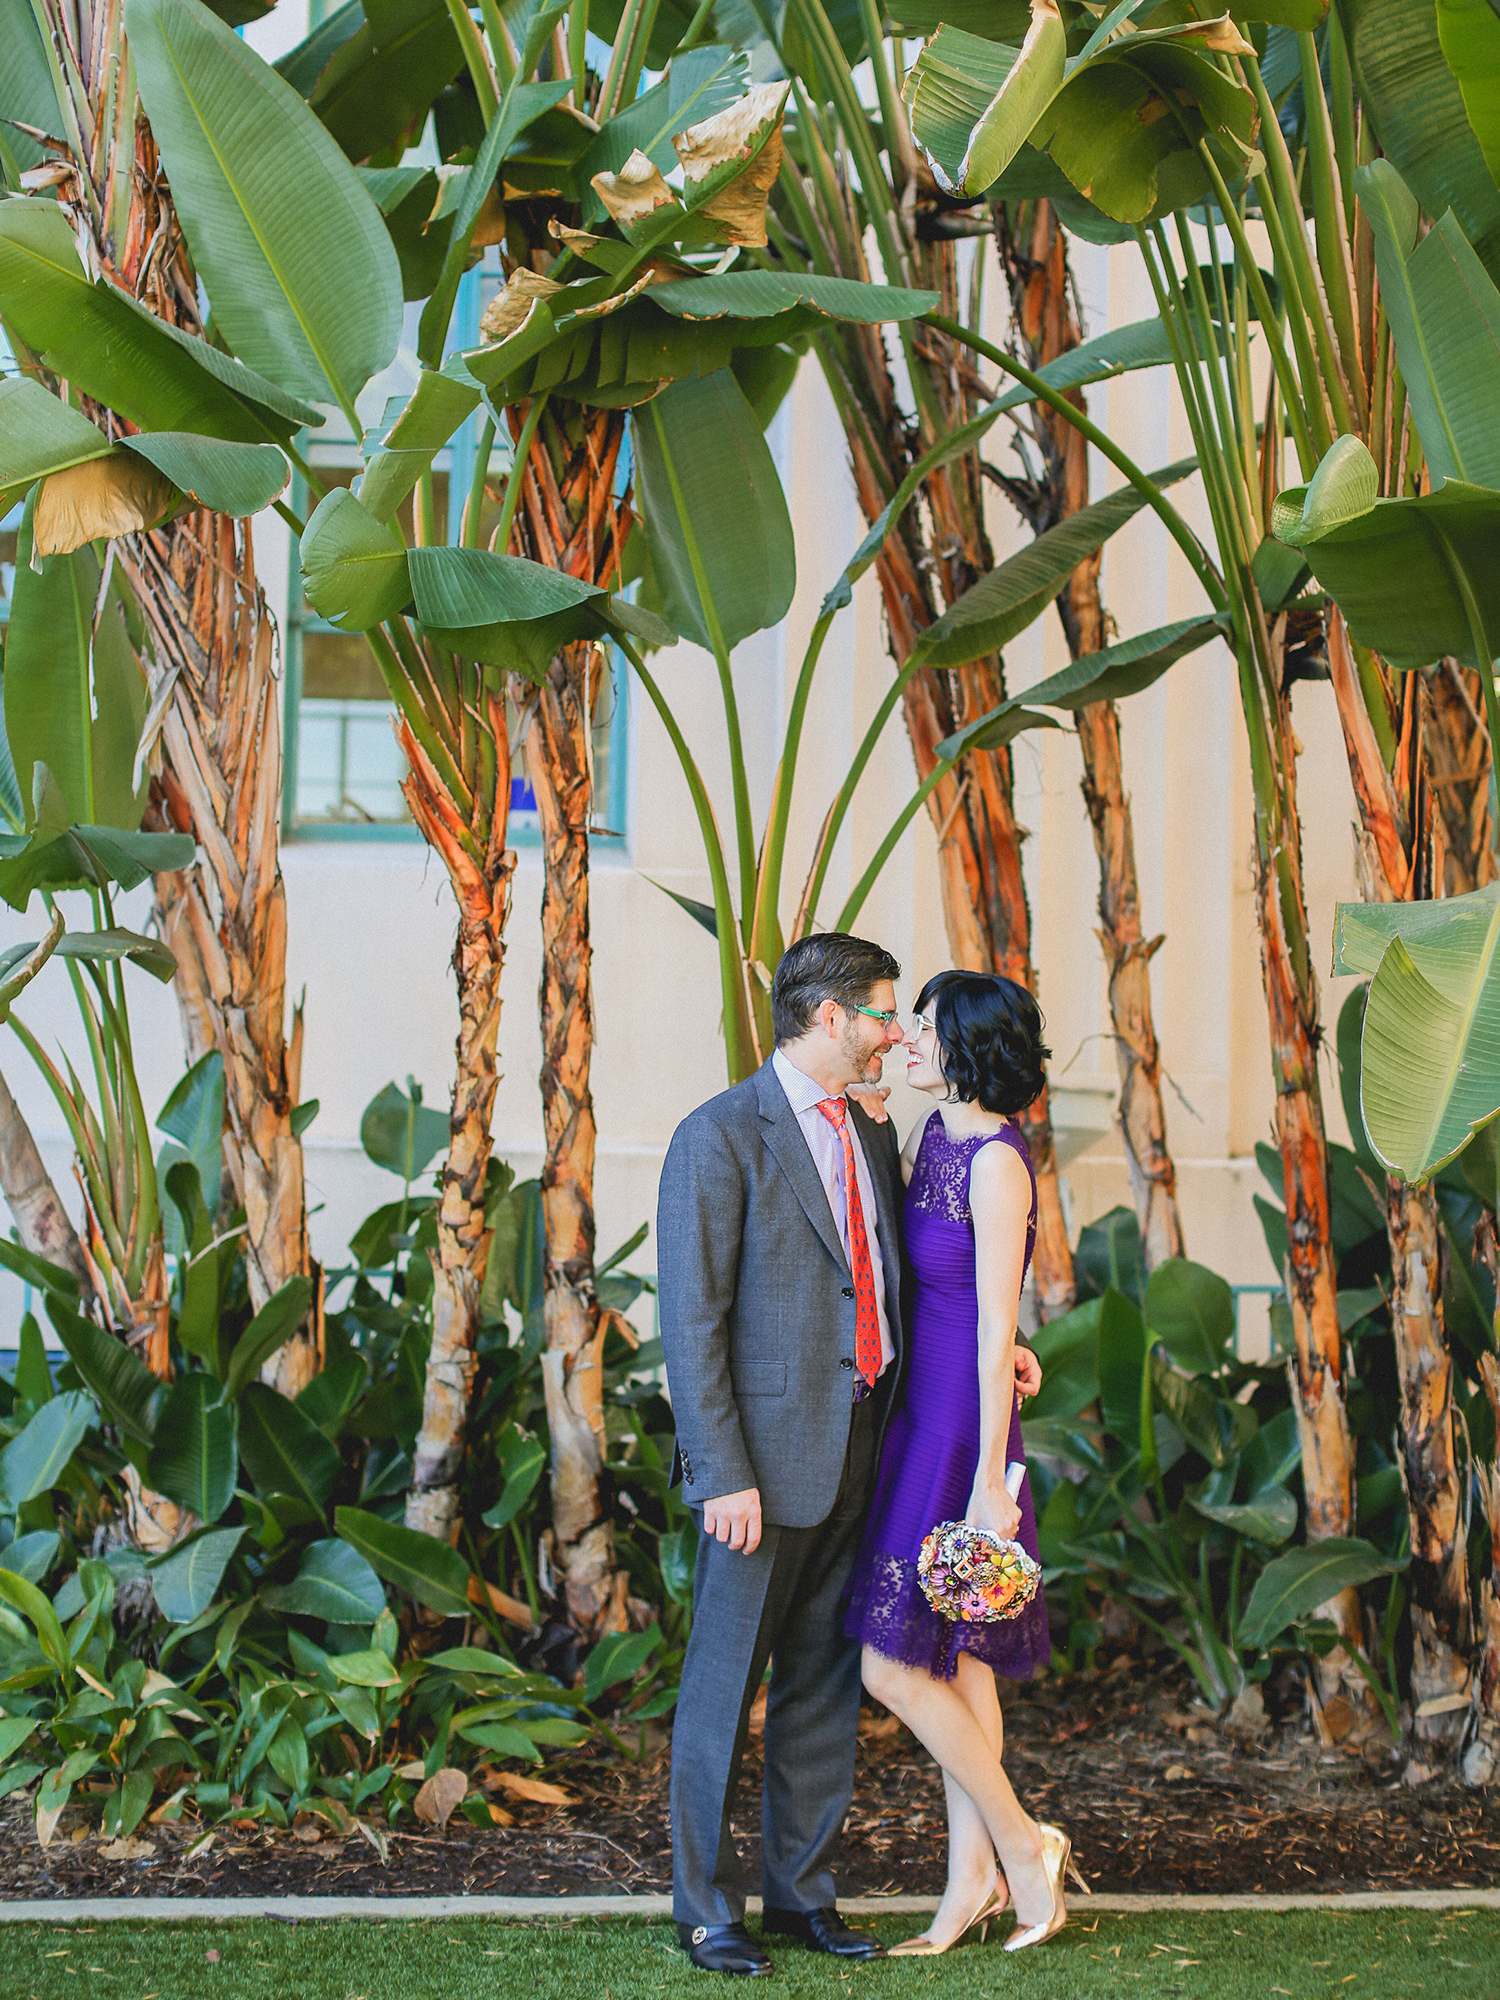 Our Elopement Pictures: 8